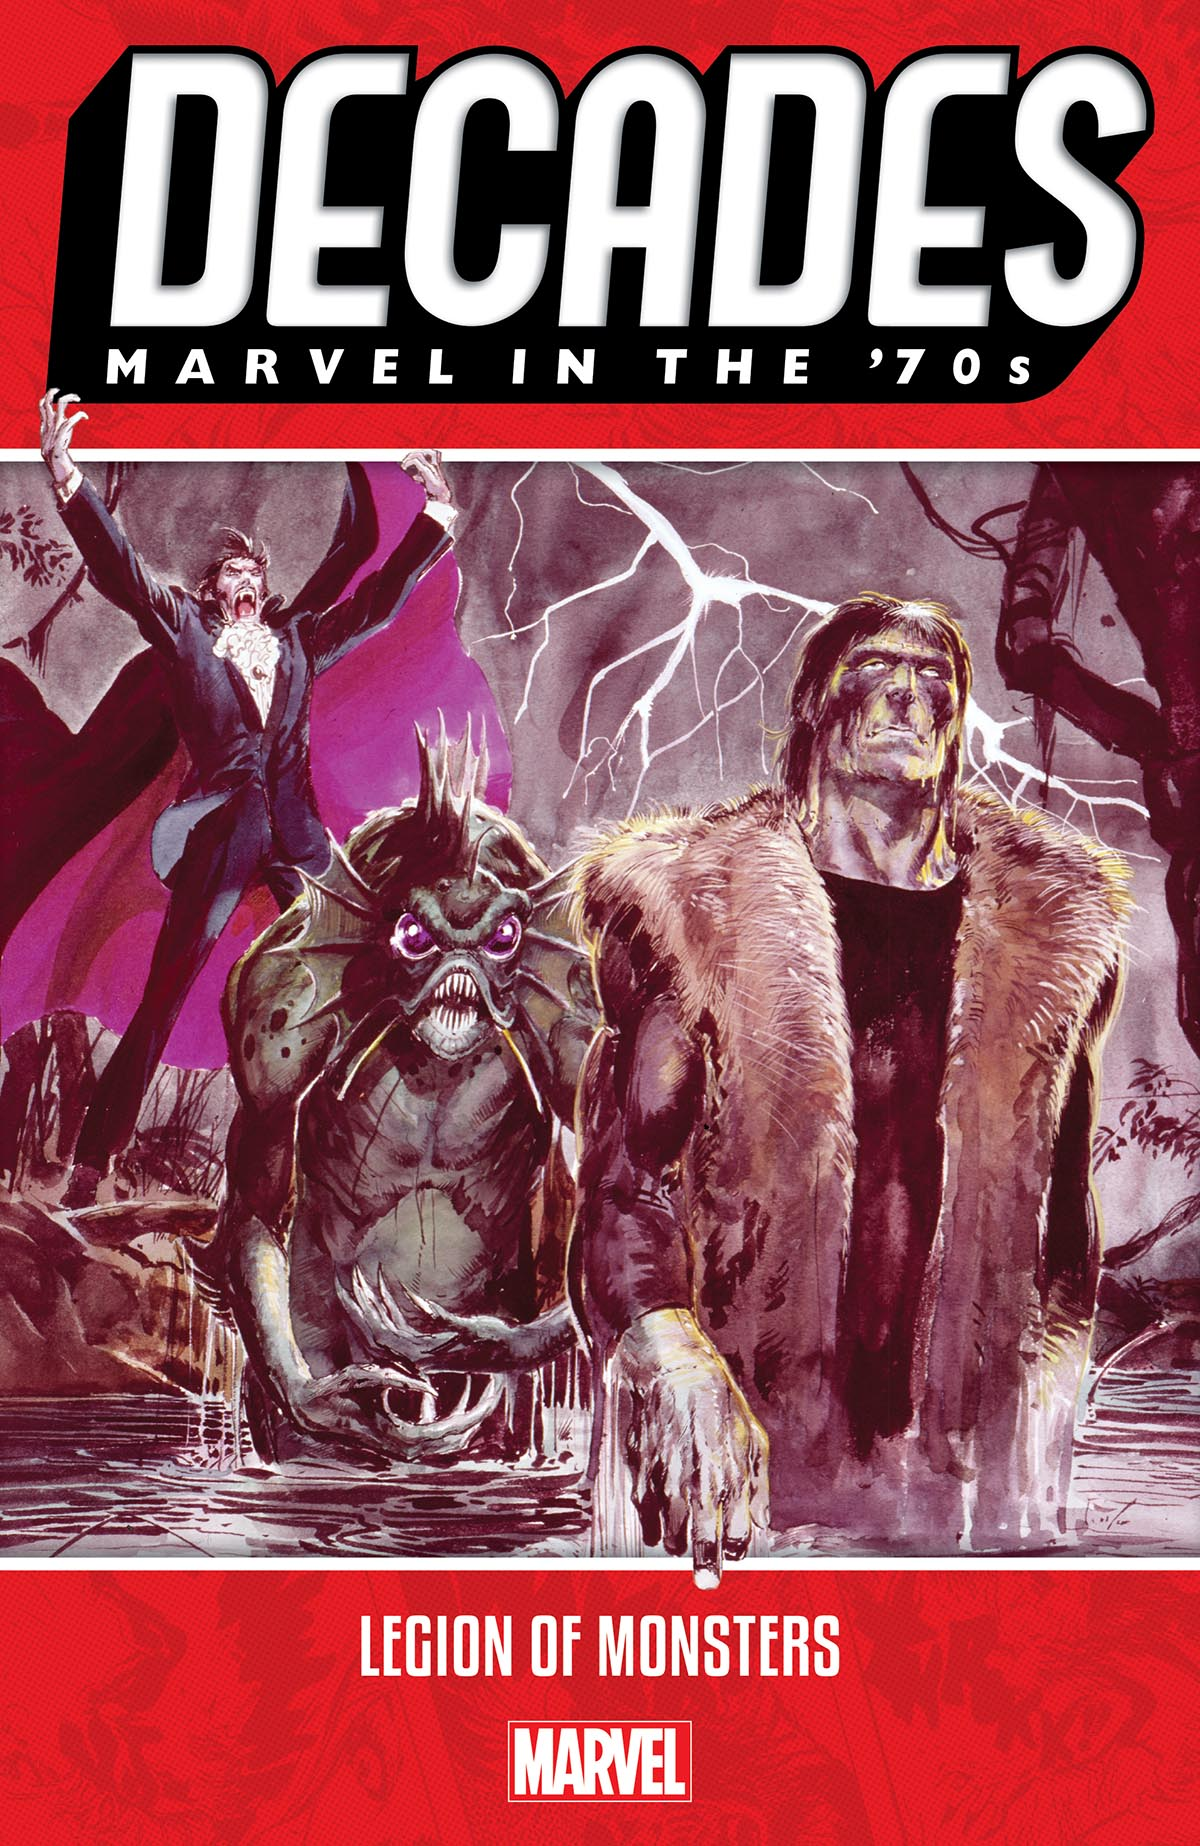 Decades: Marvel In The '70s - Legion Of Monsters (Trade Paperback)